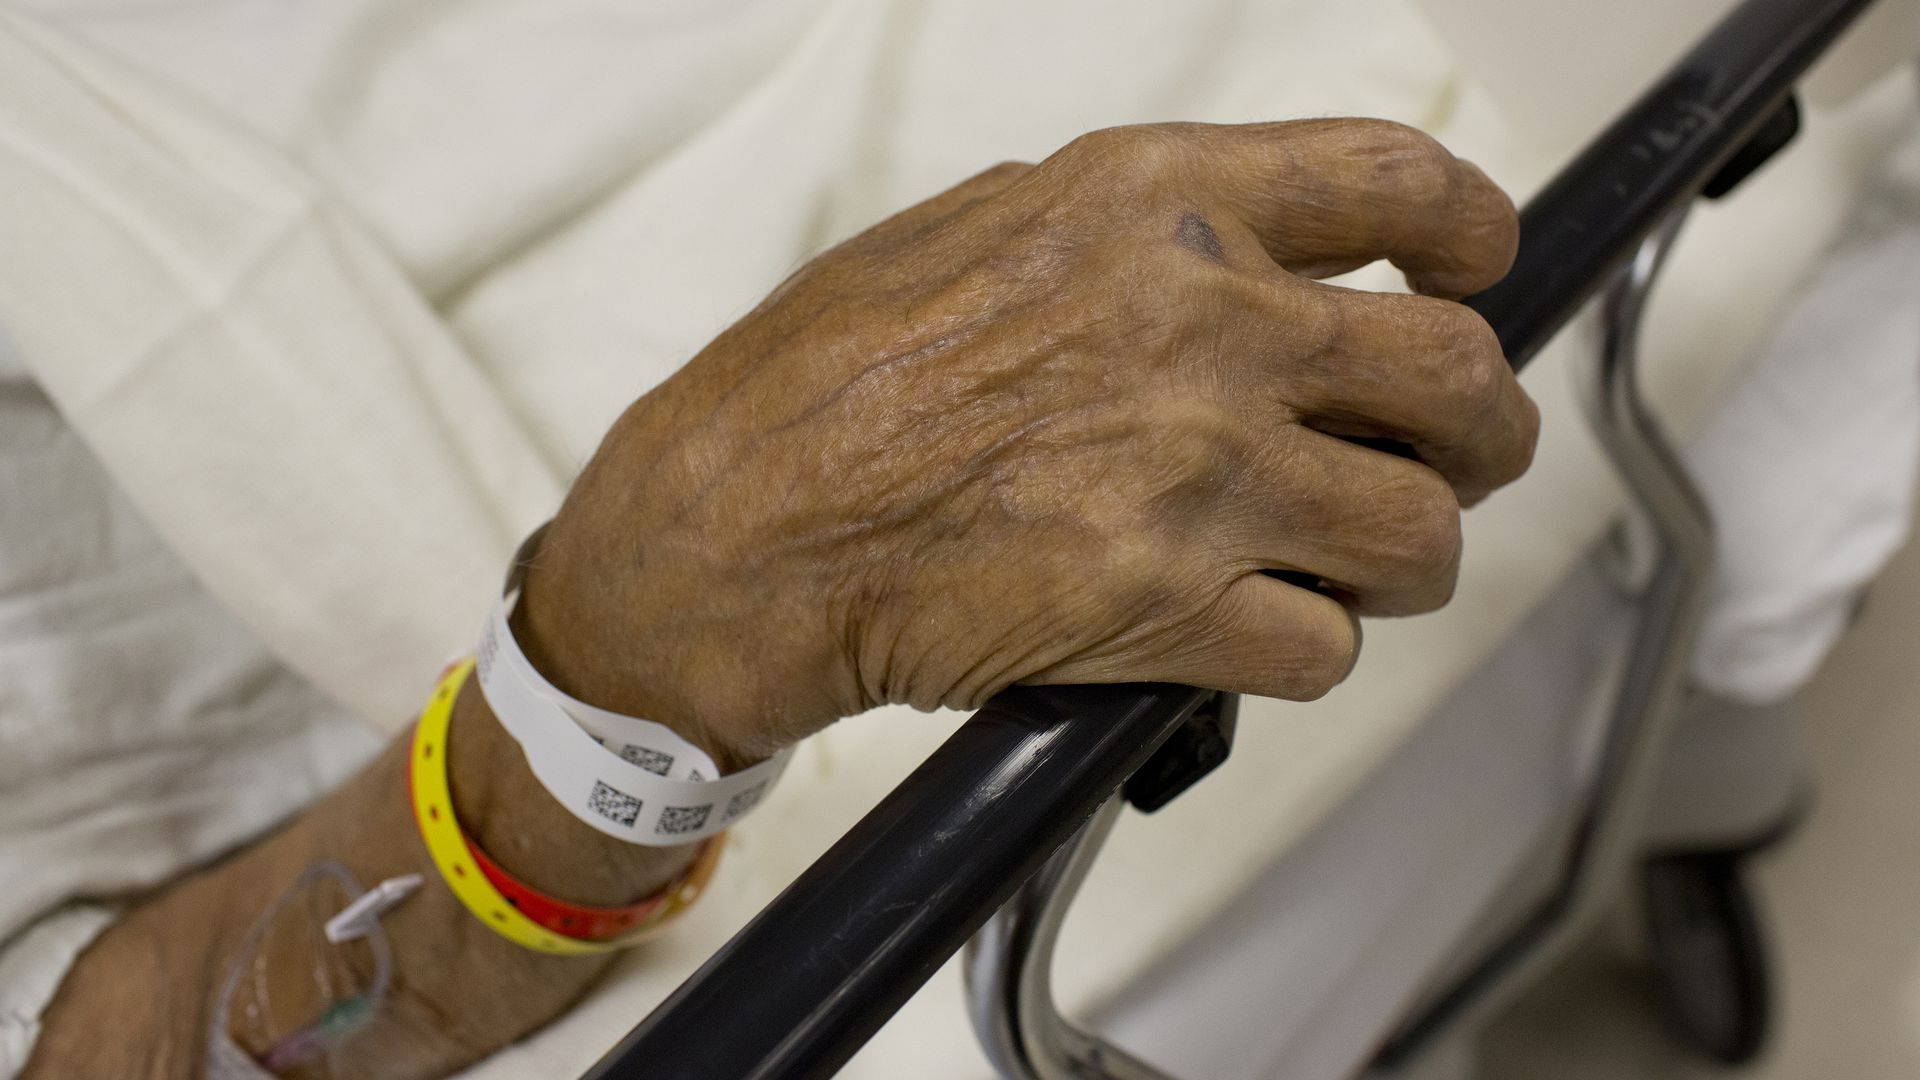 Old man's hand with hospital bracelets